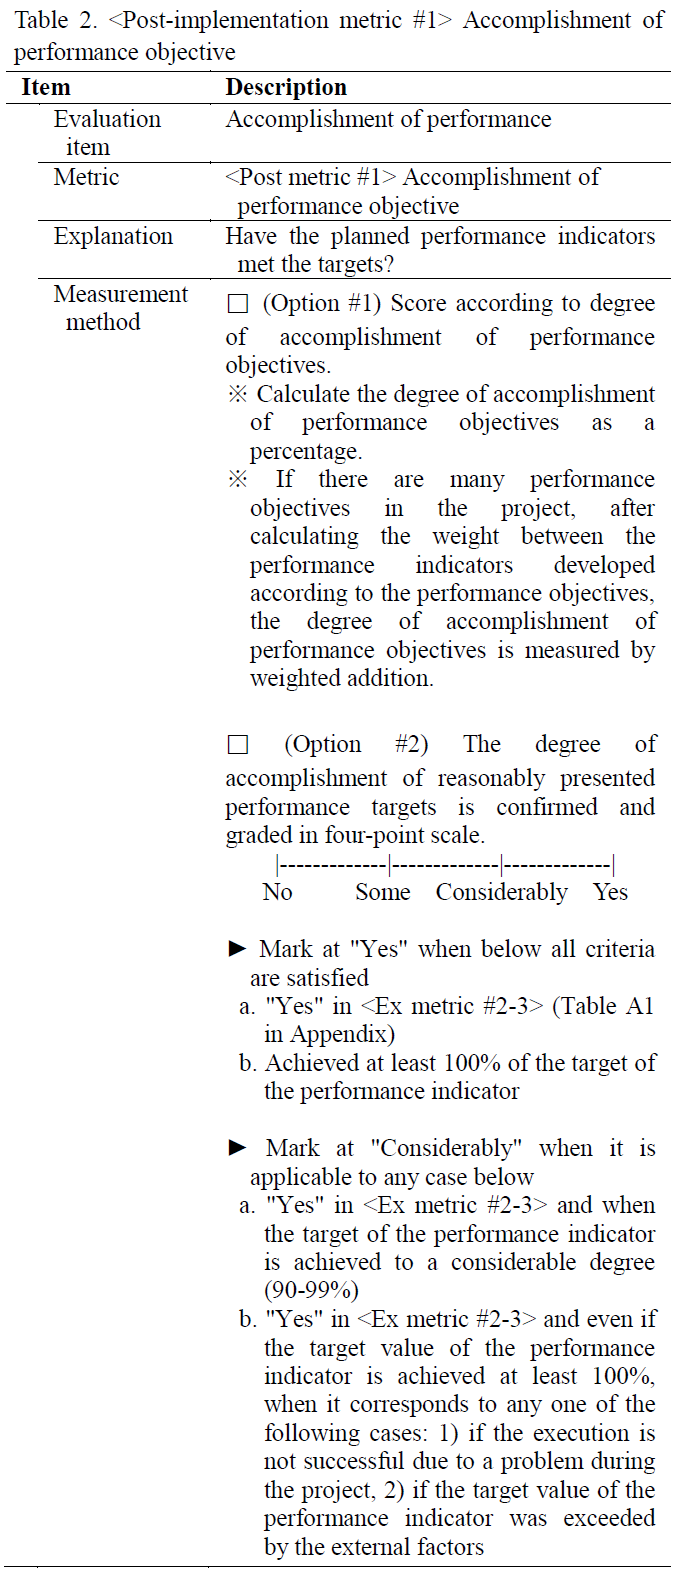 Table 2.  Accomplishment of performance objective